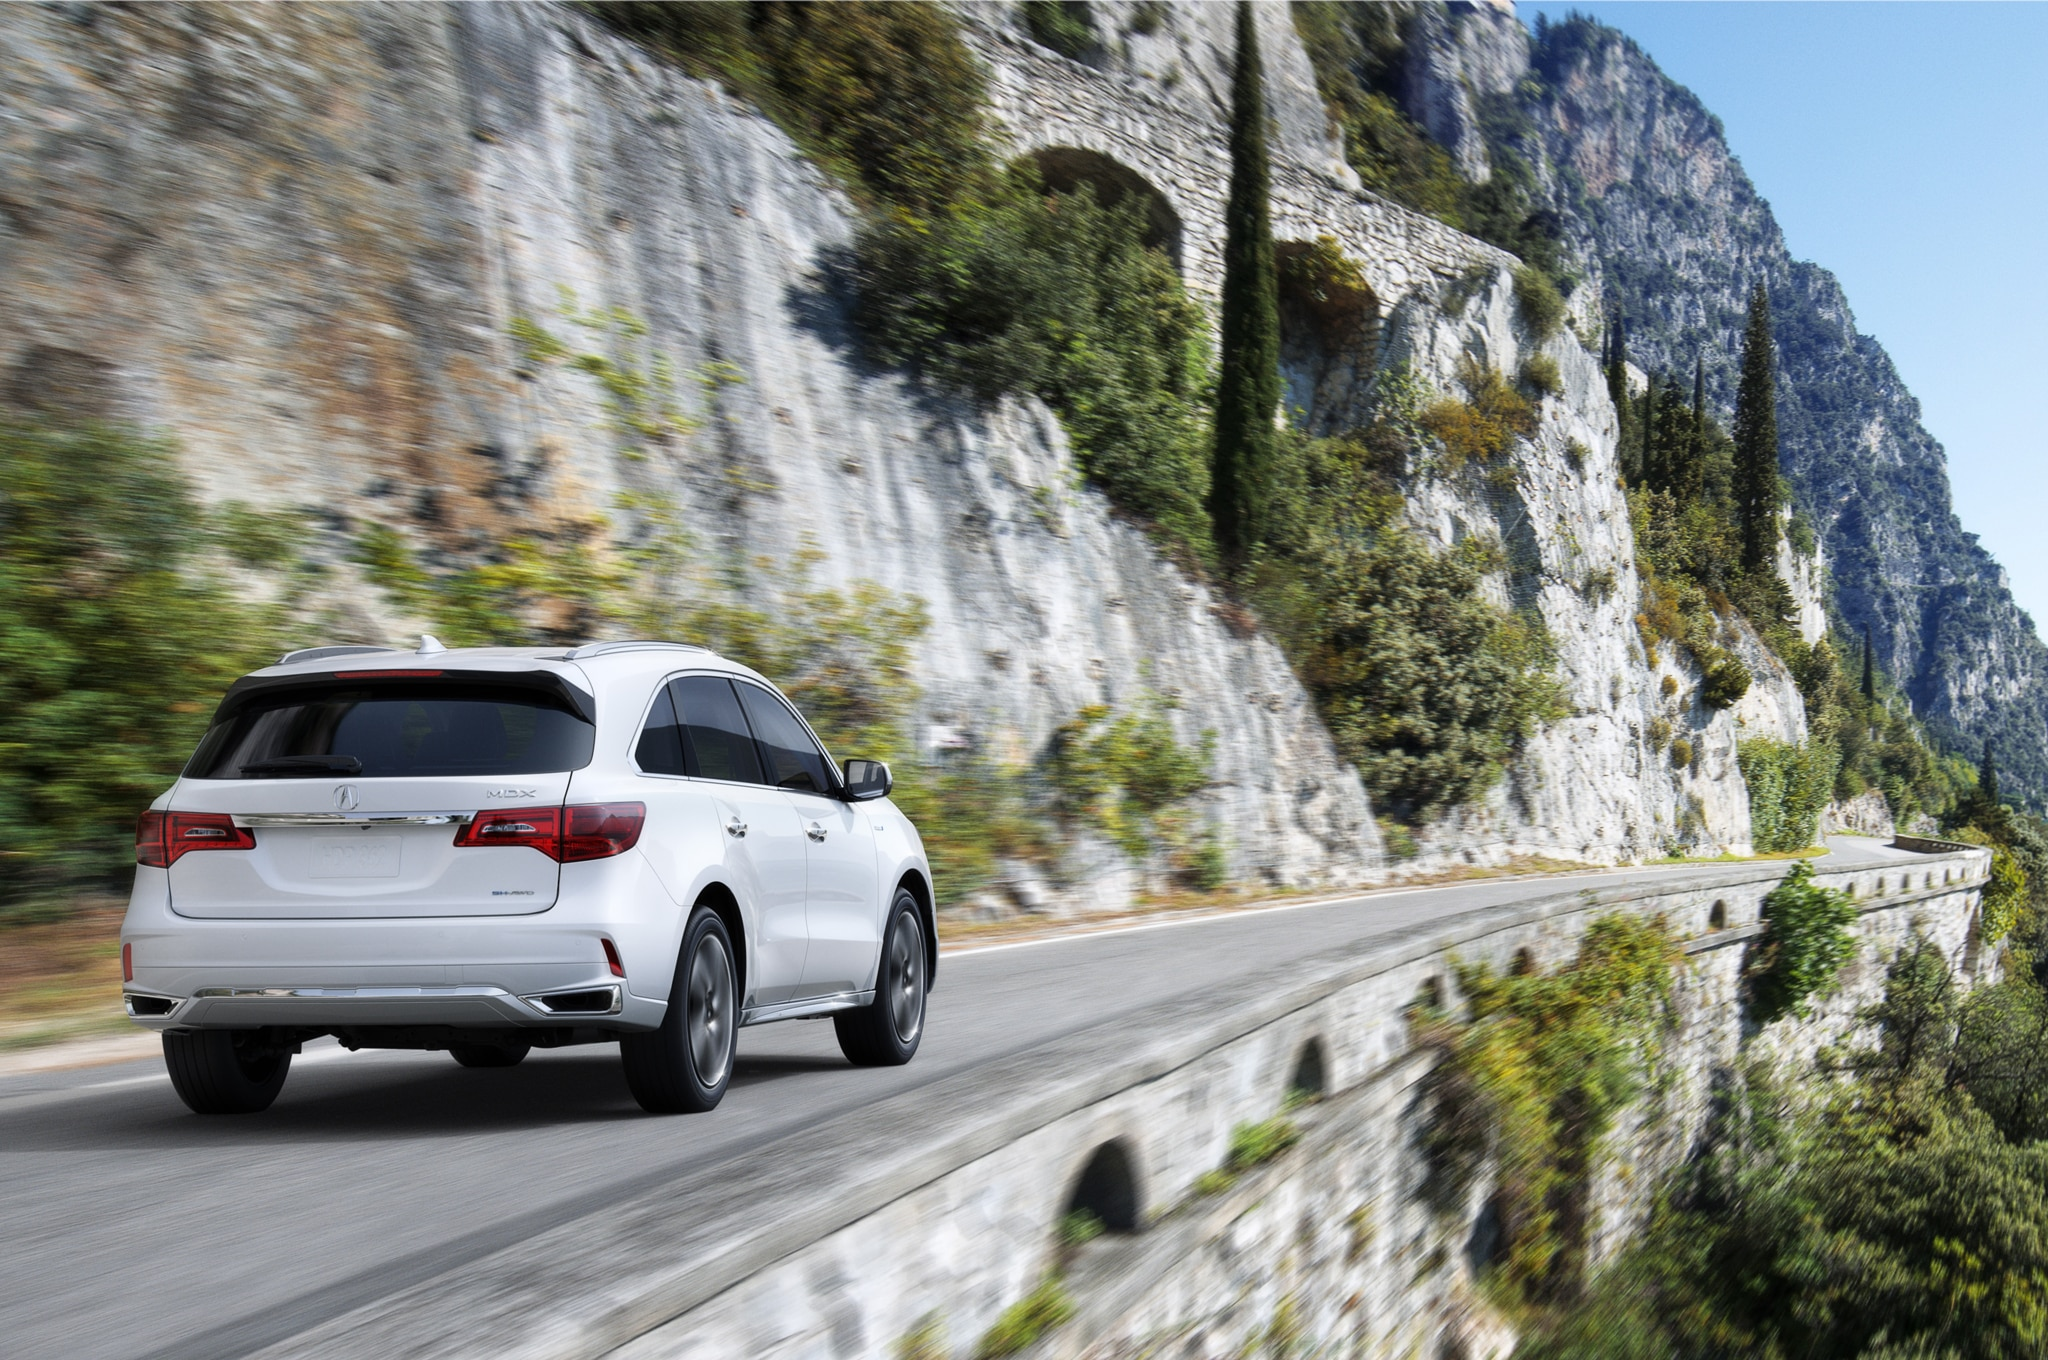 acura mdx debuts new nose sport hybrid model for new york 2017 acura ...